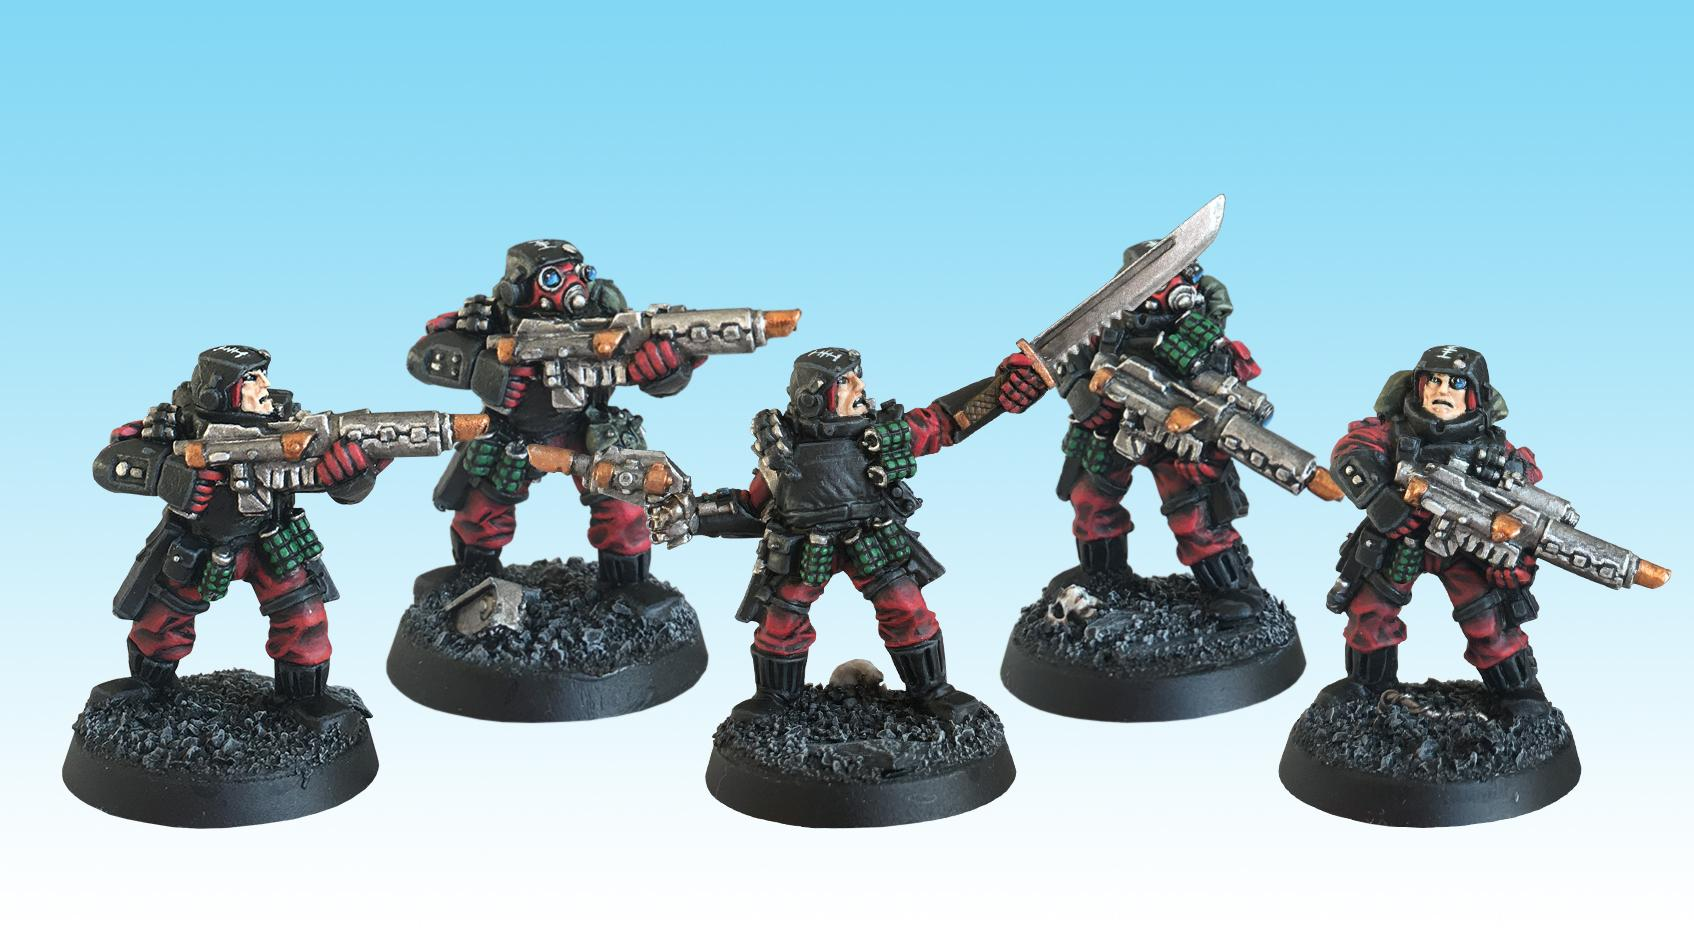 Adepta Sororitas, Inquisition, Inquisitorial Stormtroopers, Old Hammer, Order Of Our Martyred Lady, Painted, Sisters Of Battle, Squad, Storm Troopers, Warhammer 40,000